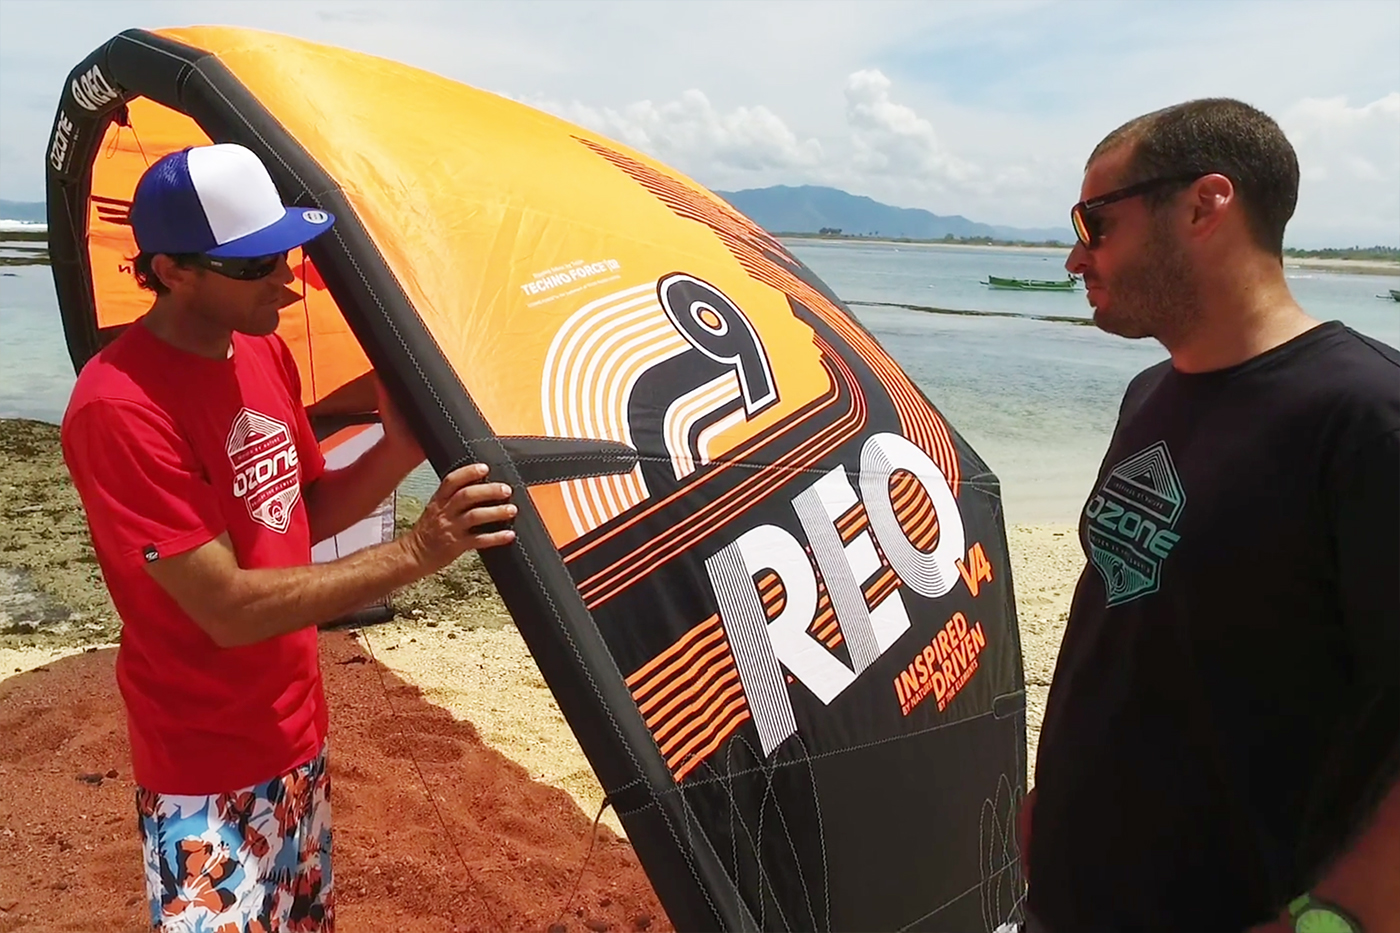 Ozone REO V4 Tech Talk with Ryland Blakeney and Marc Ramseier